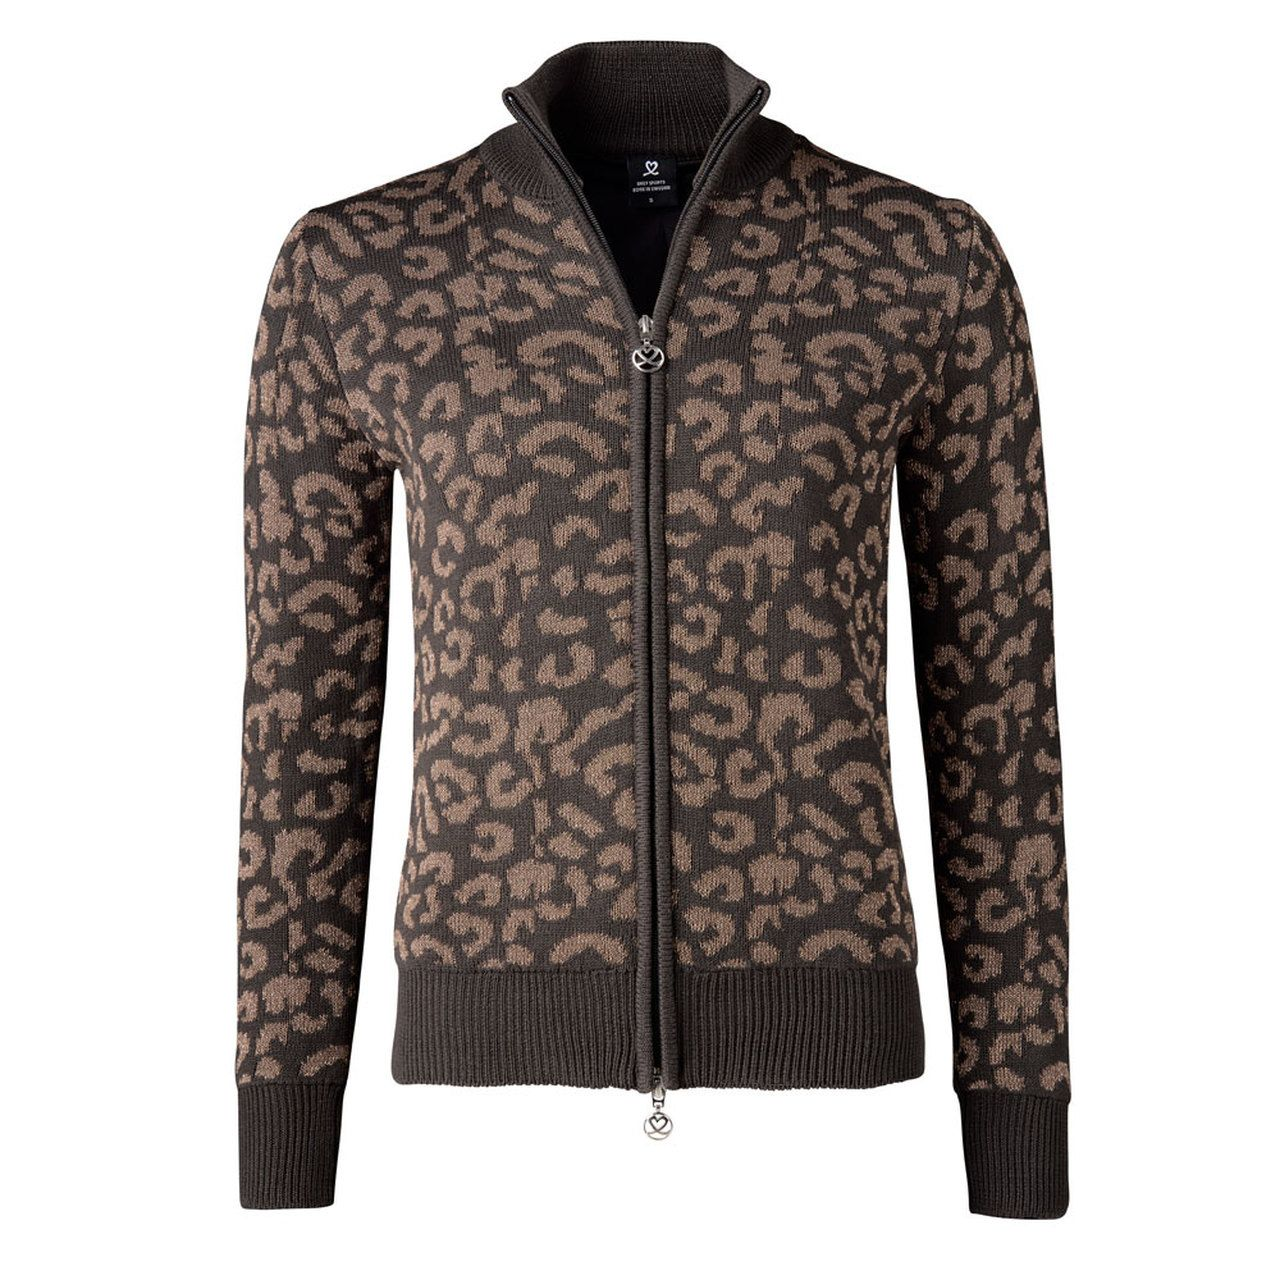 Lined JacketStyle Cardigan with Leopard Print in Coffee